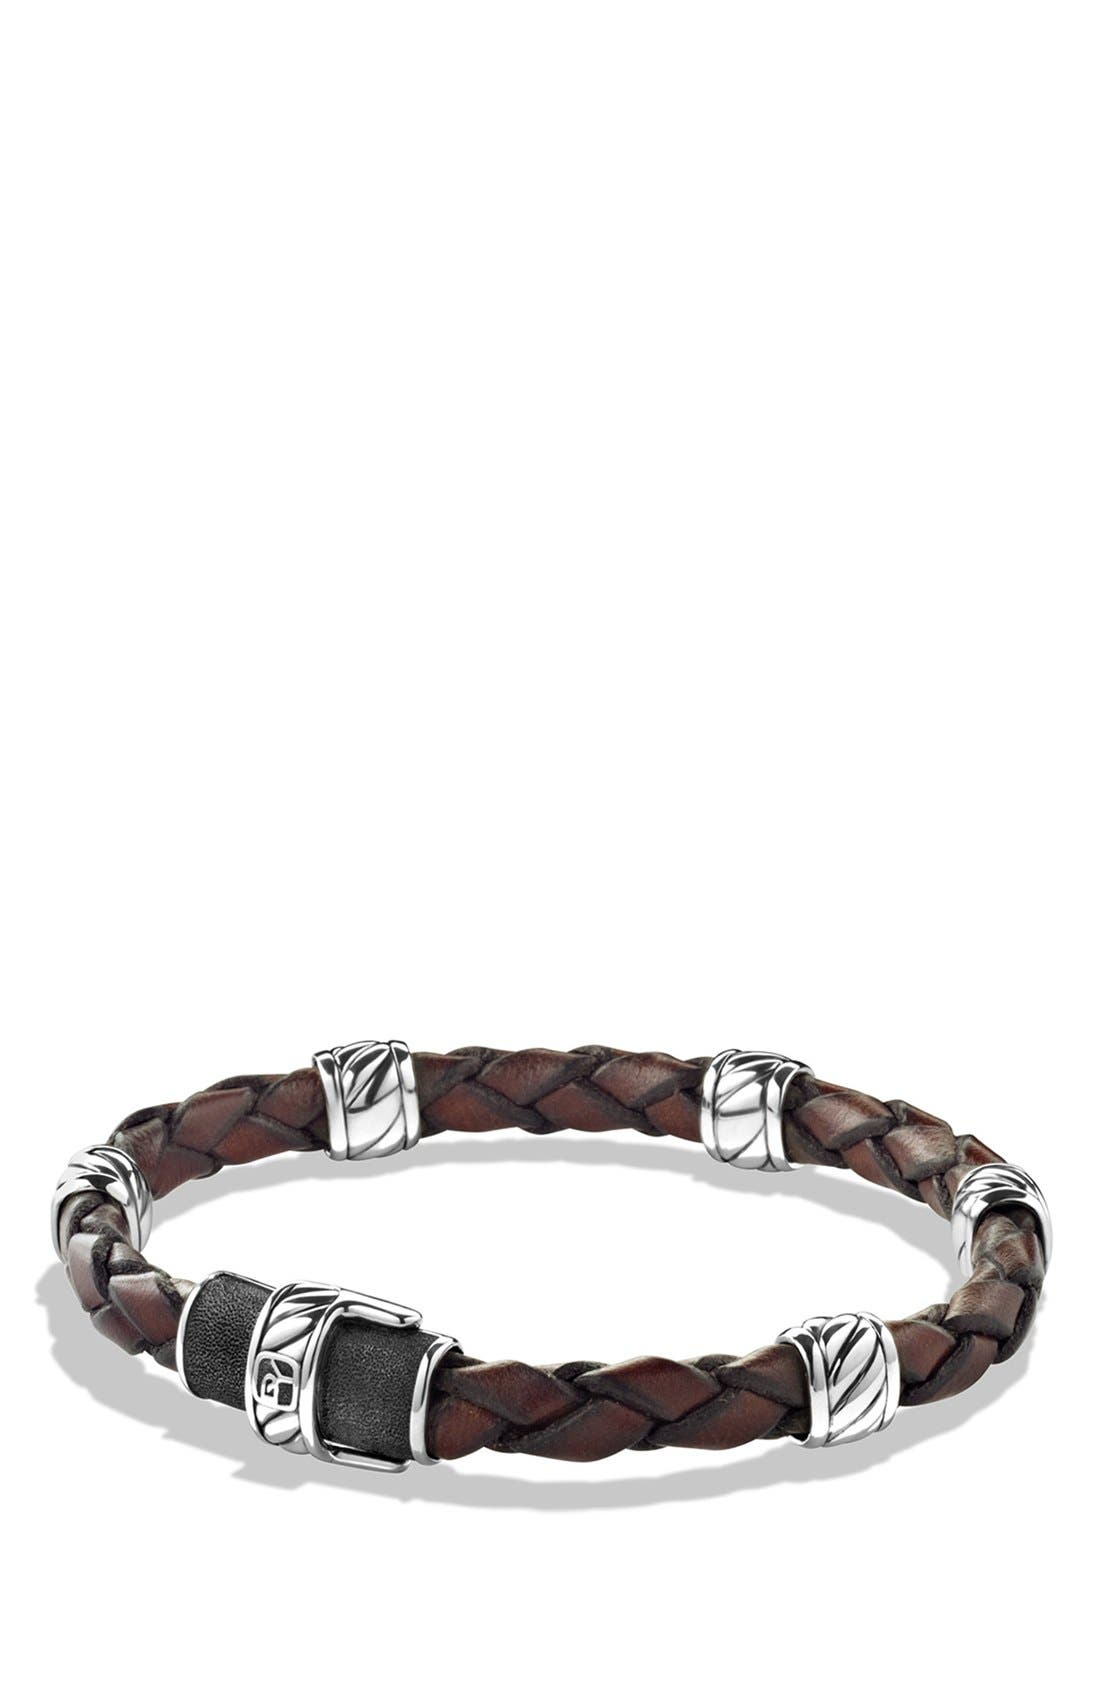 'Cable Classics' Leather Station Bracelet in Brown,                             Main thumbnail 1, color,                             201